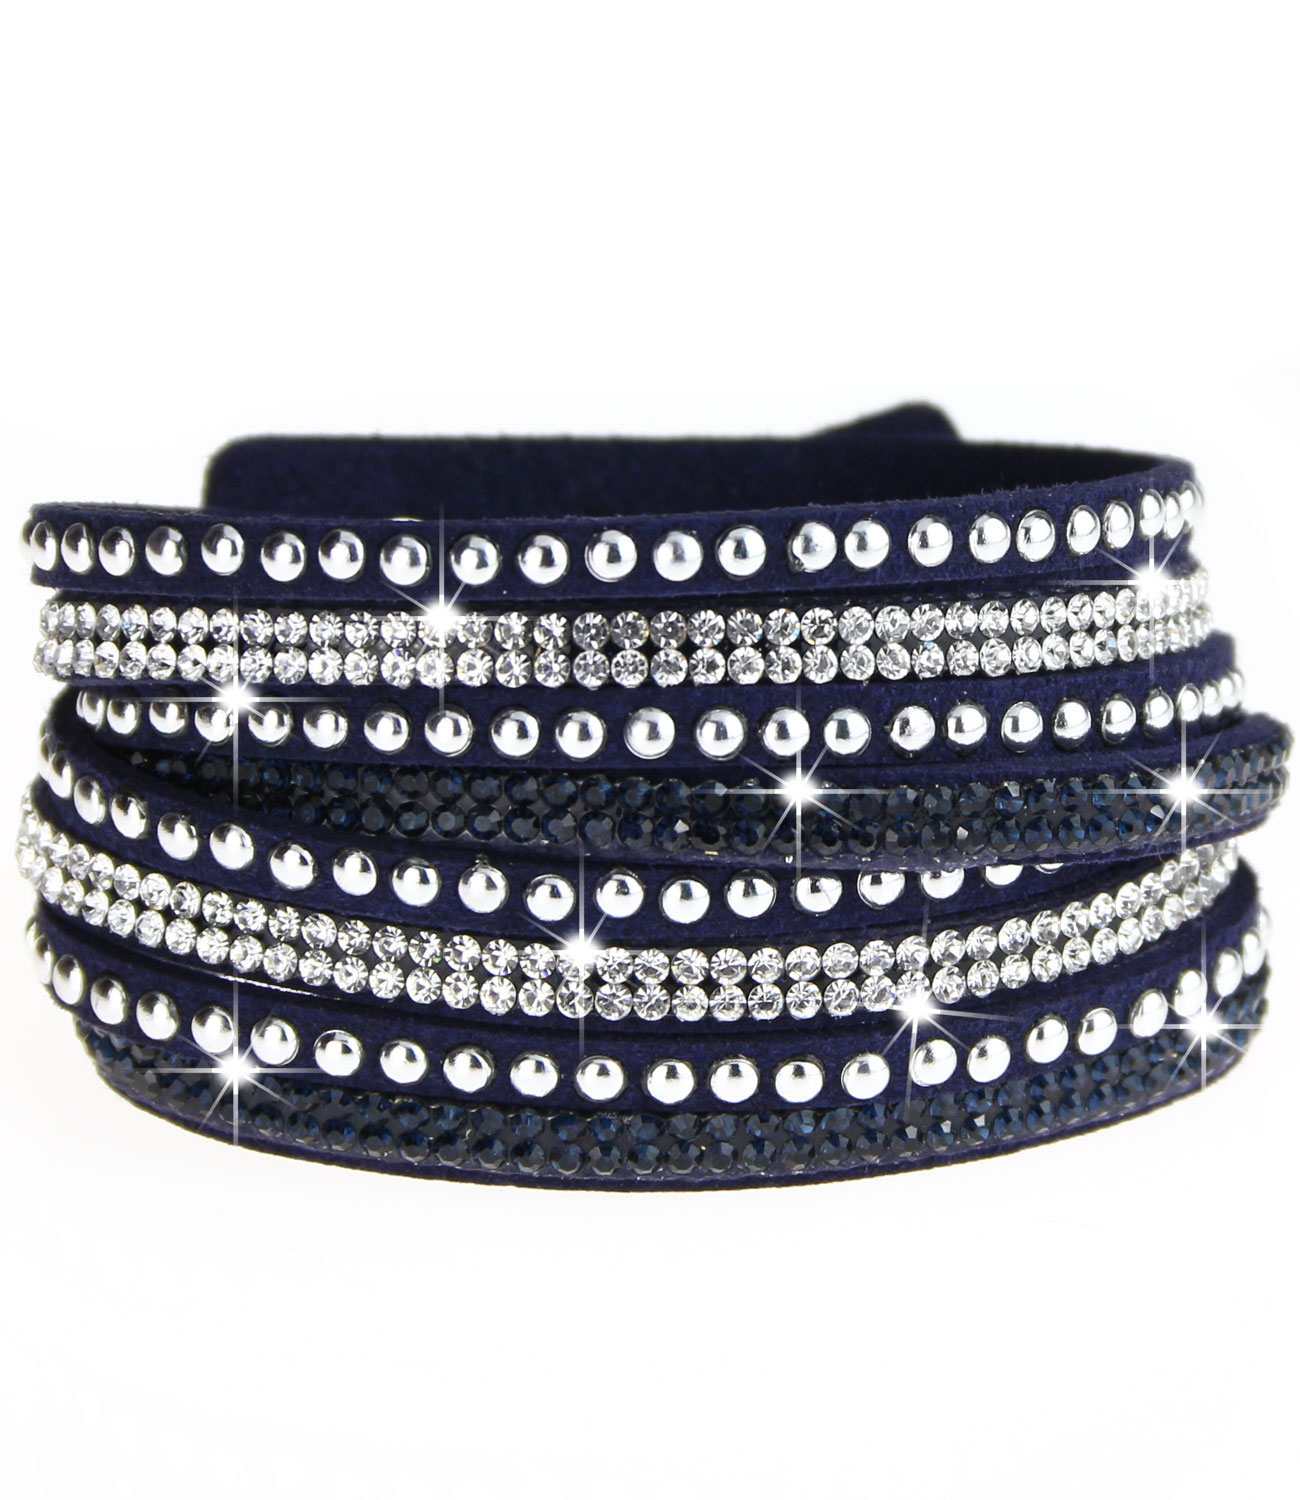 caripe damen armband glitzer nieten strass wickelarmband strala ebay. Black Bedroom Furniture Sets. Home Design Ideas